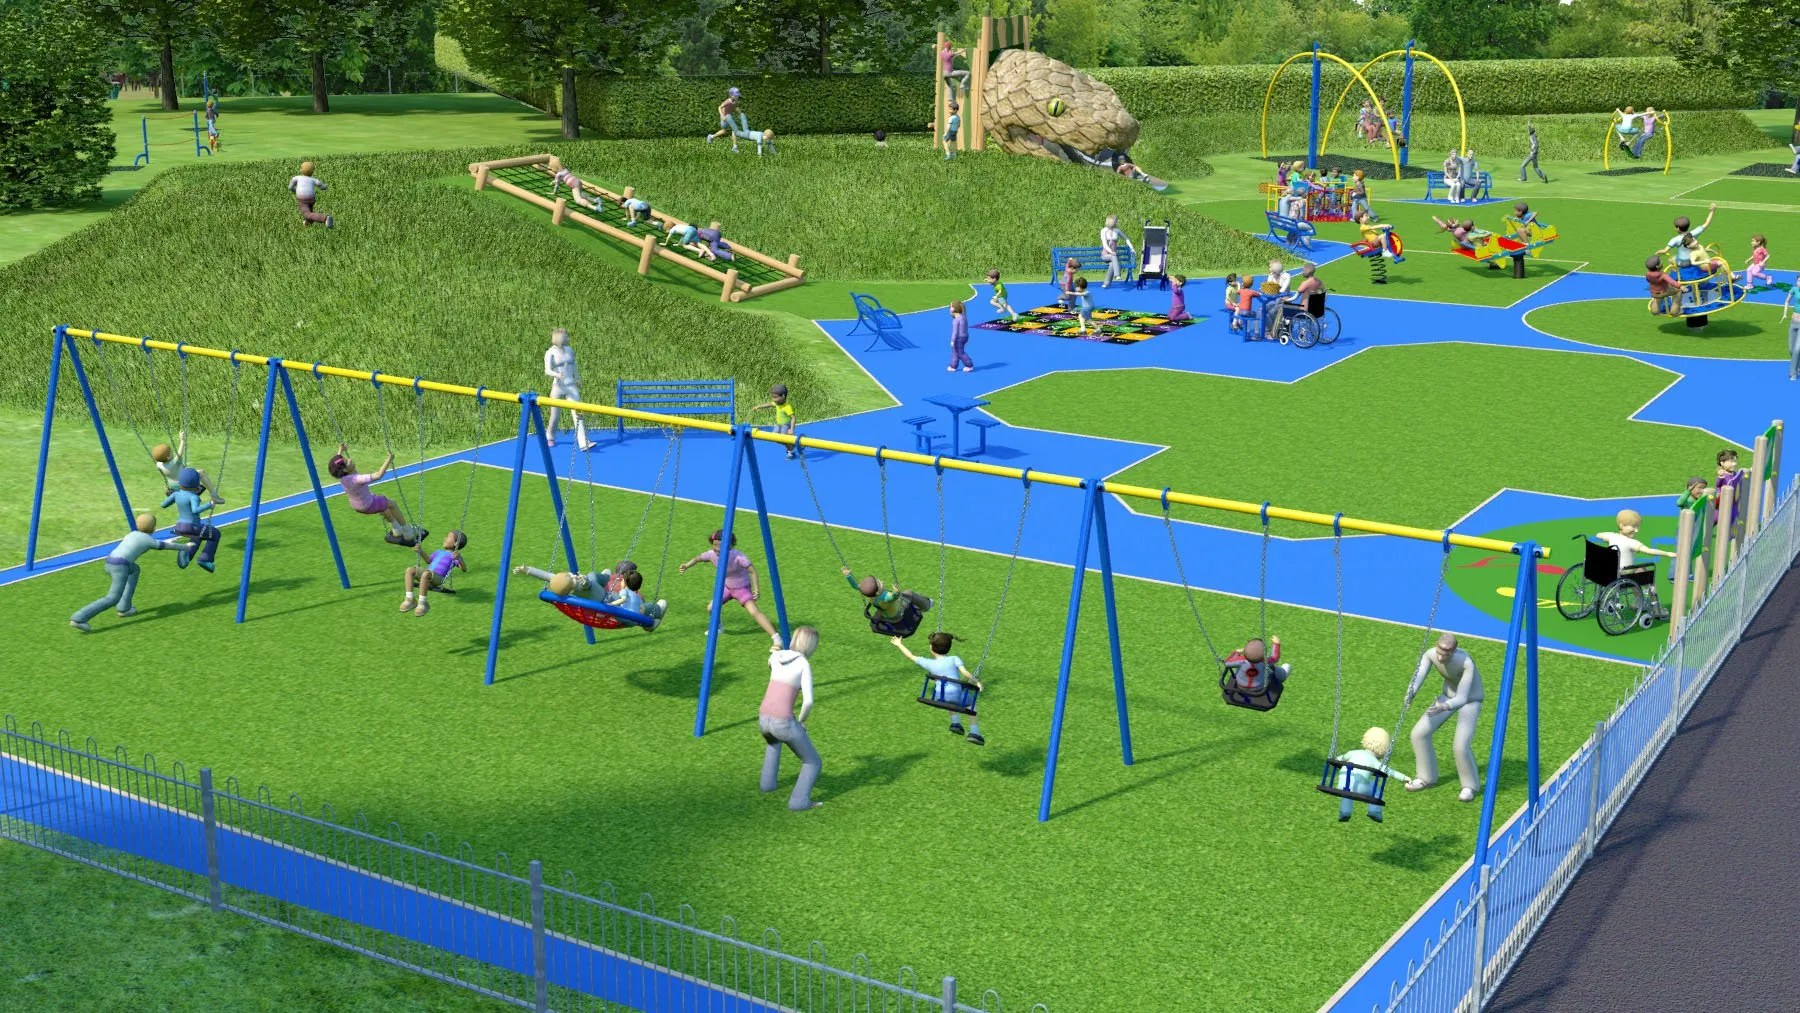 Hillsborough Park Children's Playground Upgrades: Proposed Upgrades